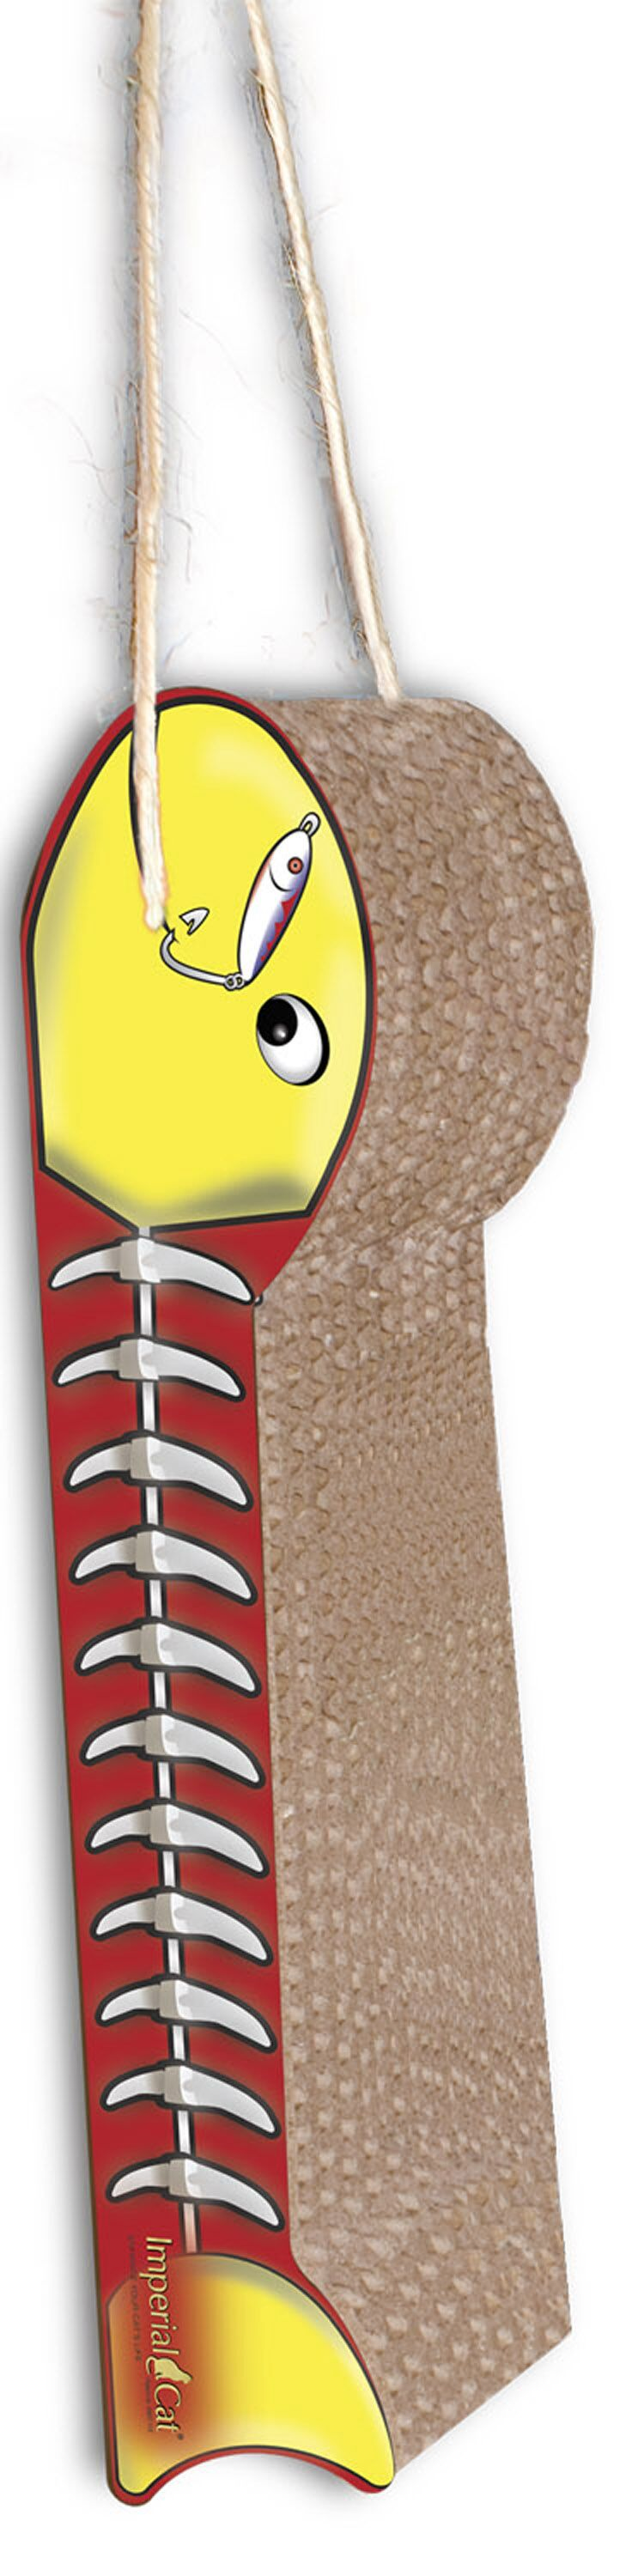 Scratch 'n Shapes Hanging Fish on a Line Recycled Paper Scratching Board Style: Yellow and Red